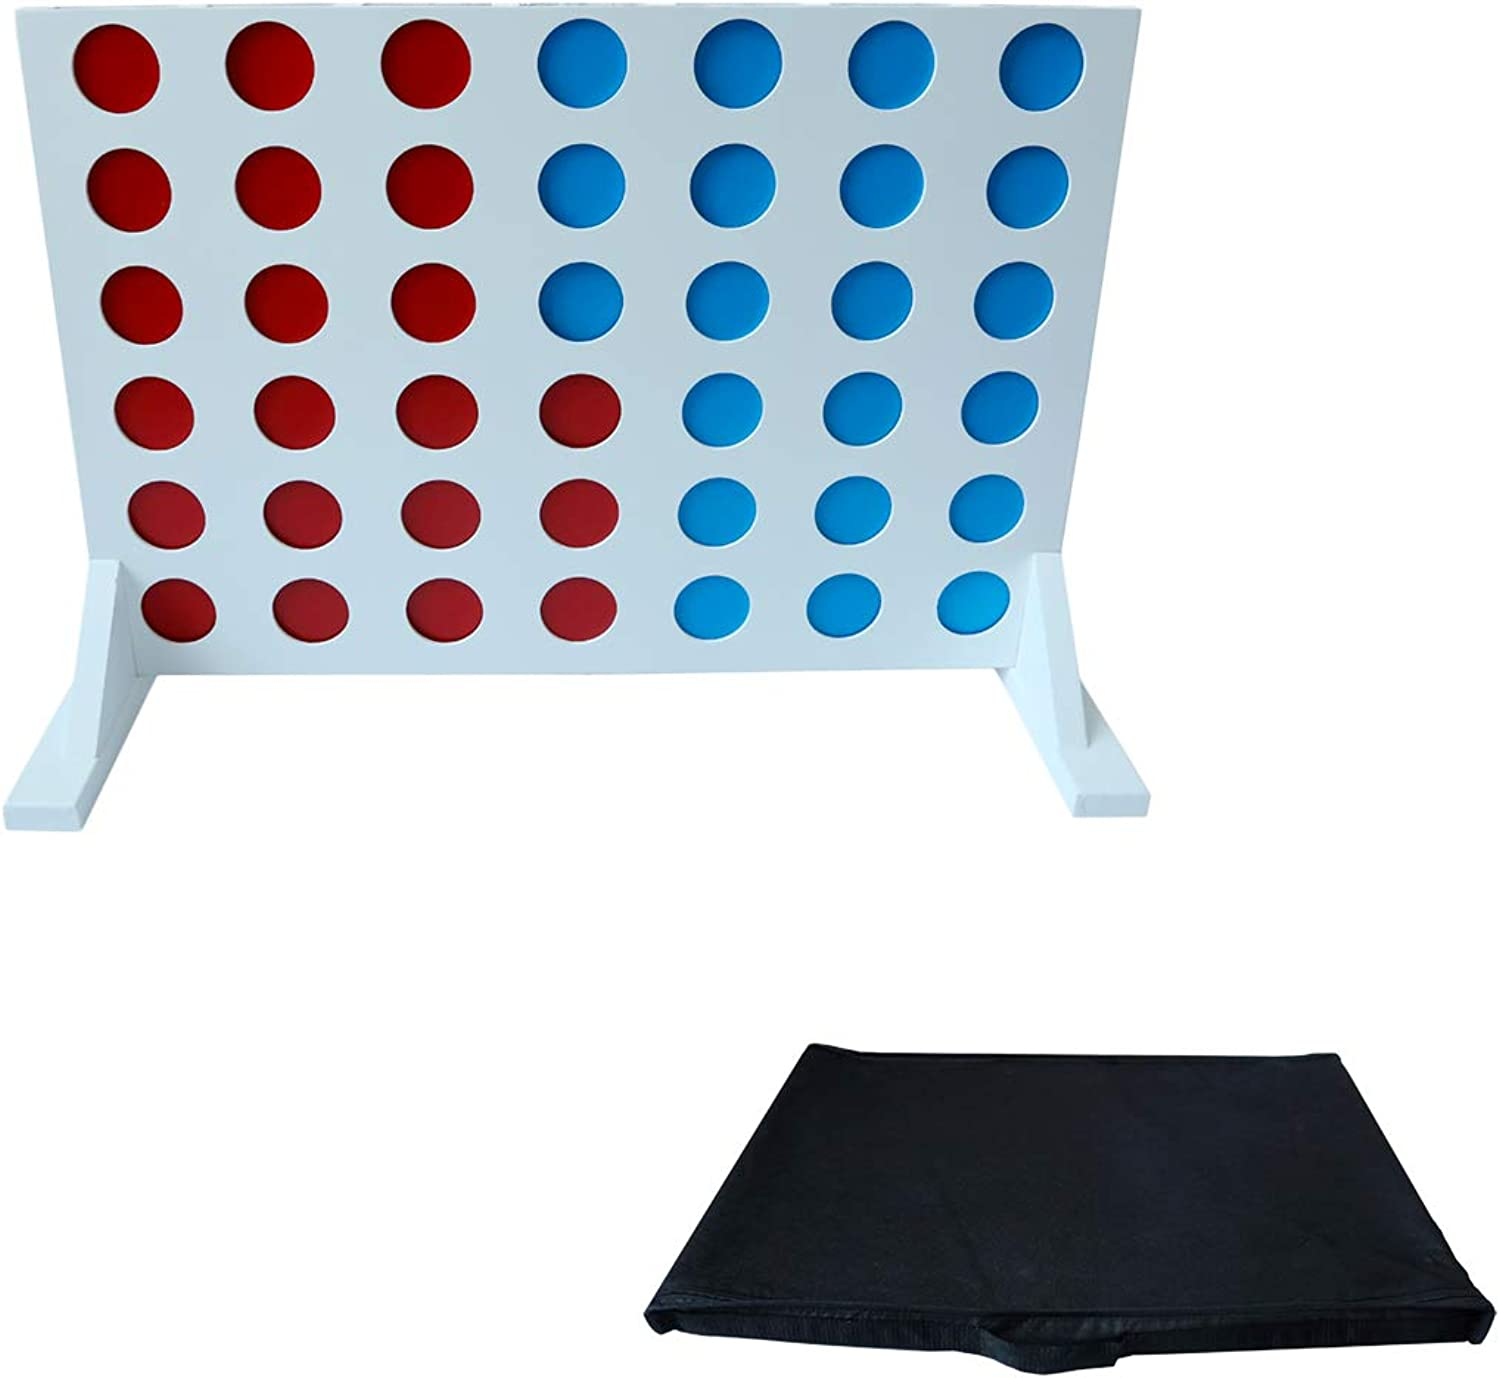 Trademark Innovations Giant Outdoor 4 in A Row Game for Backyard